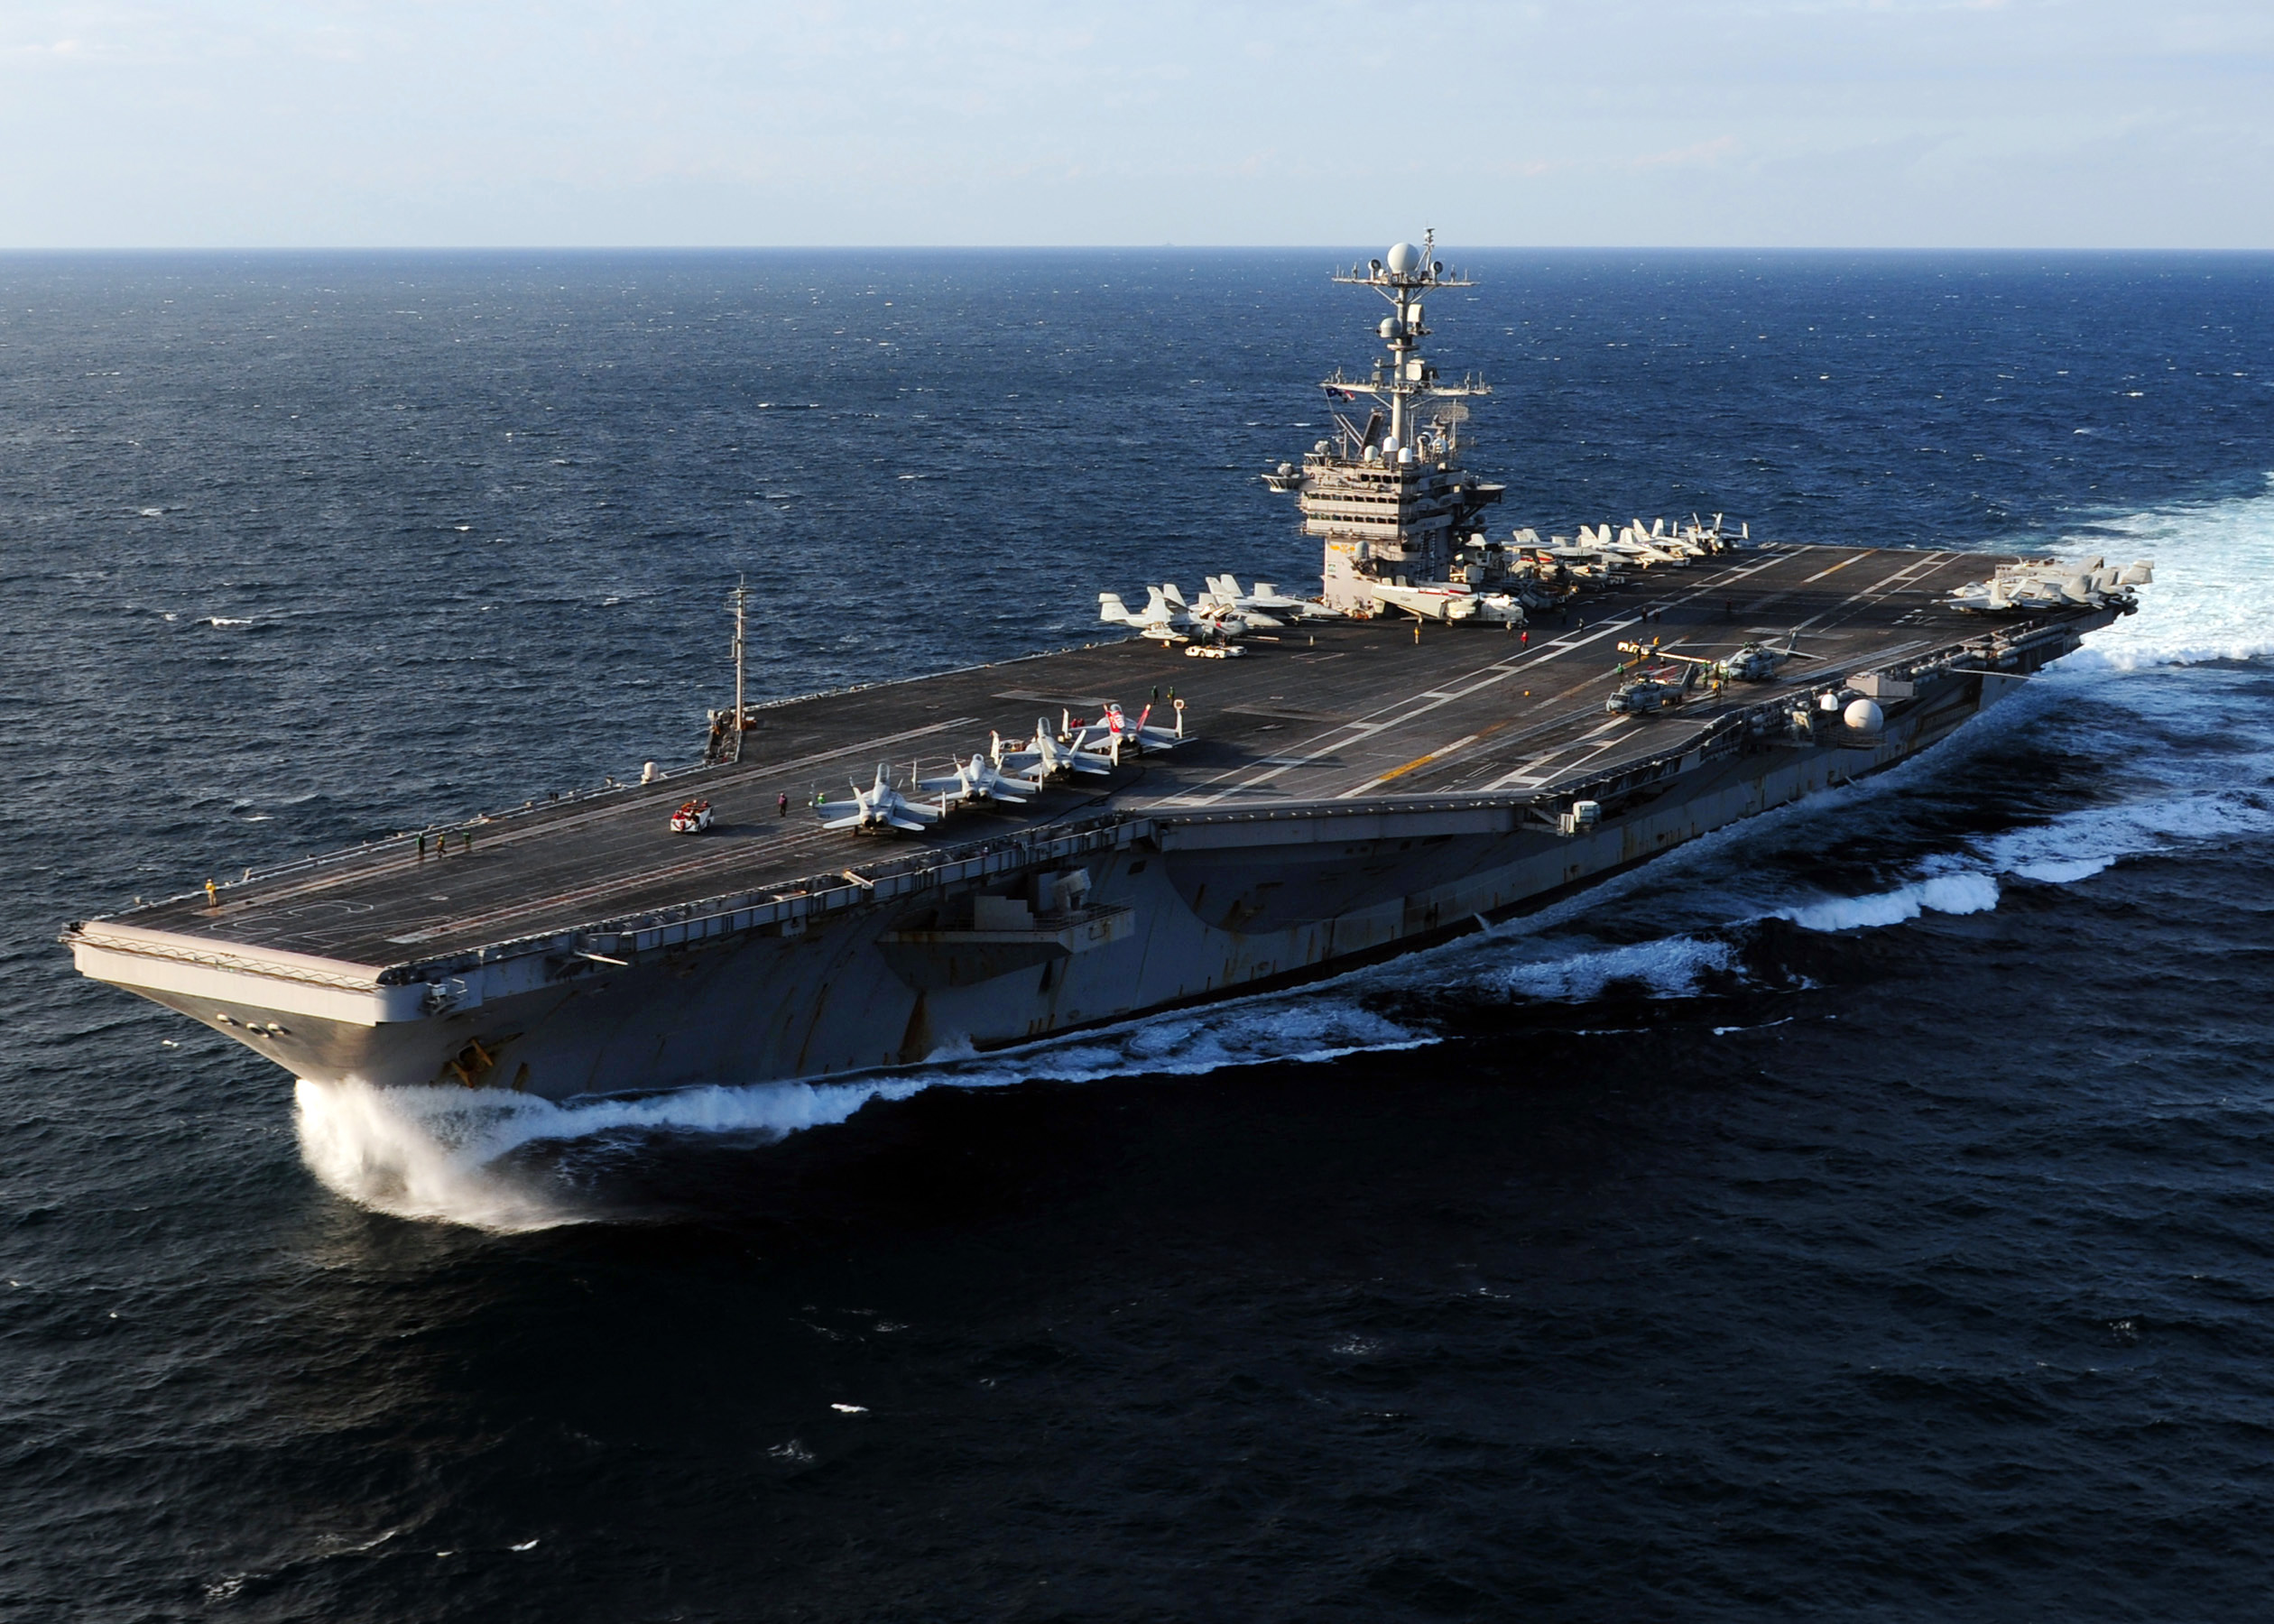 U.S. Navy • USS George Washington (CVN 73) • Refueling Complex Overhaul • VA, USA